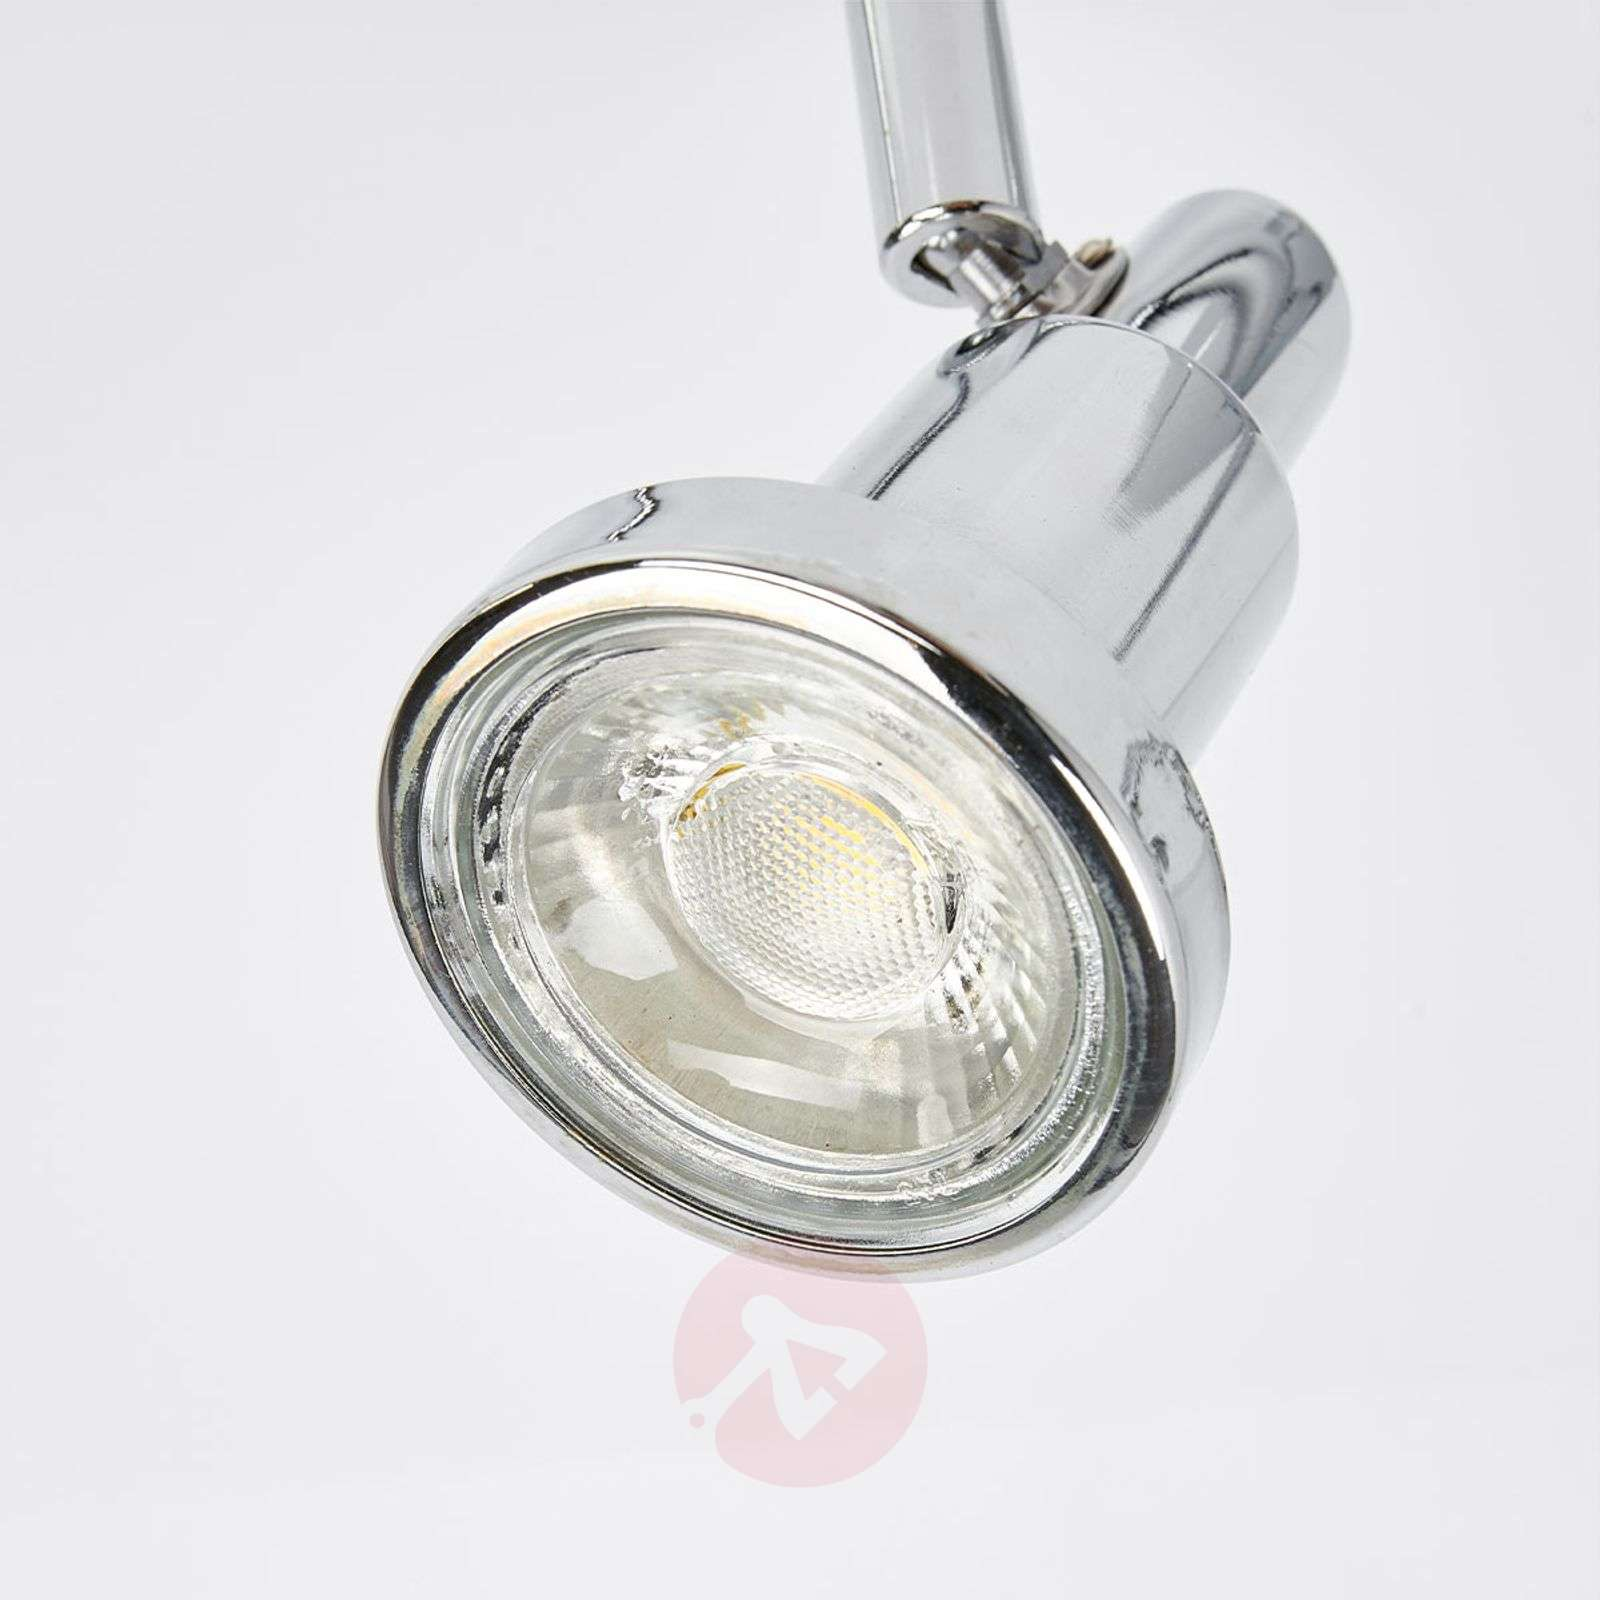 Four-bulb GU10 LED ceiling spotlight Thom-9954015-02